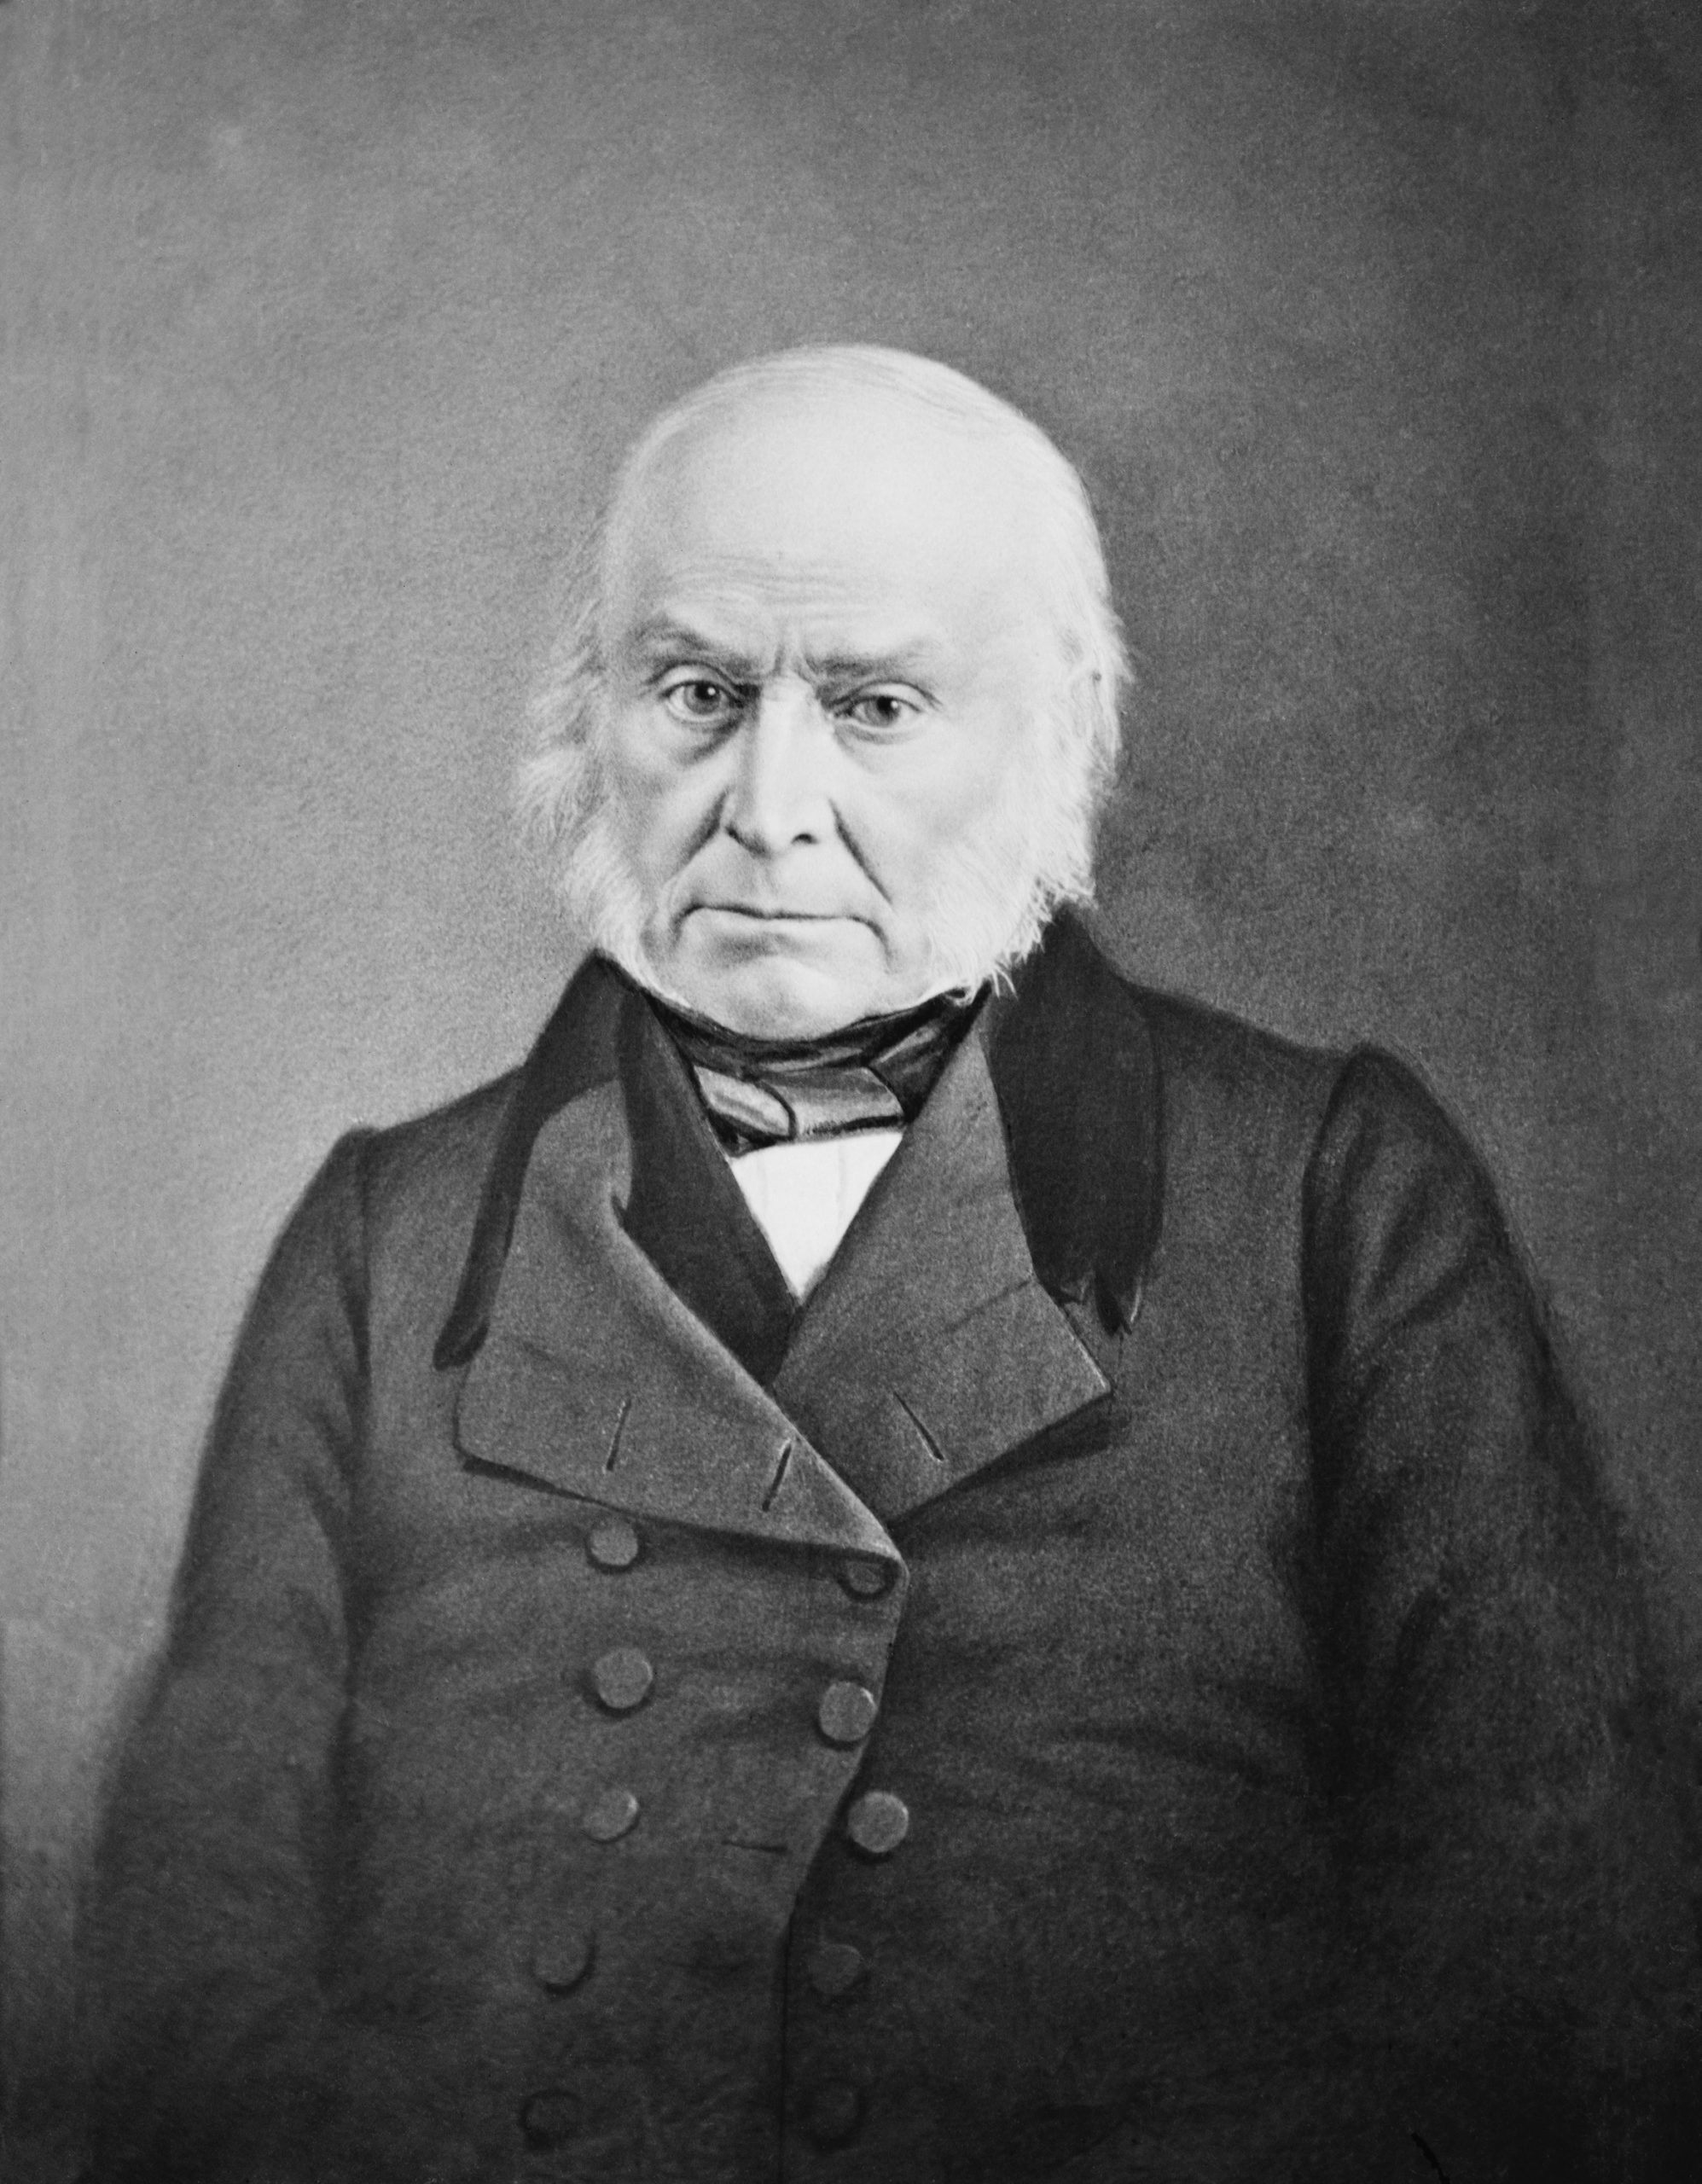 He fought against the expansion of slavery in his presidential years 1825 to 1829.  He was also the son of a former president.